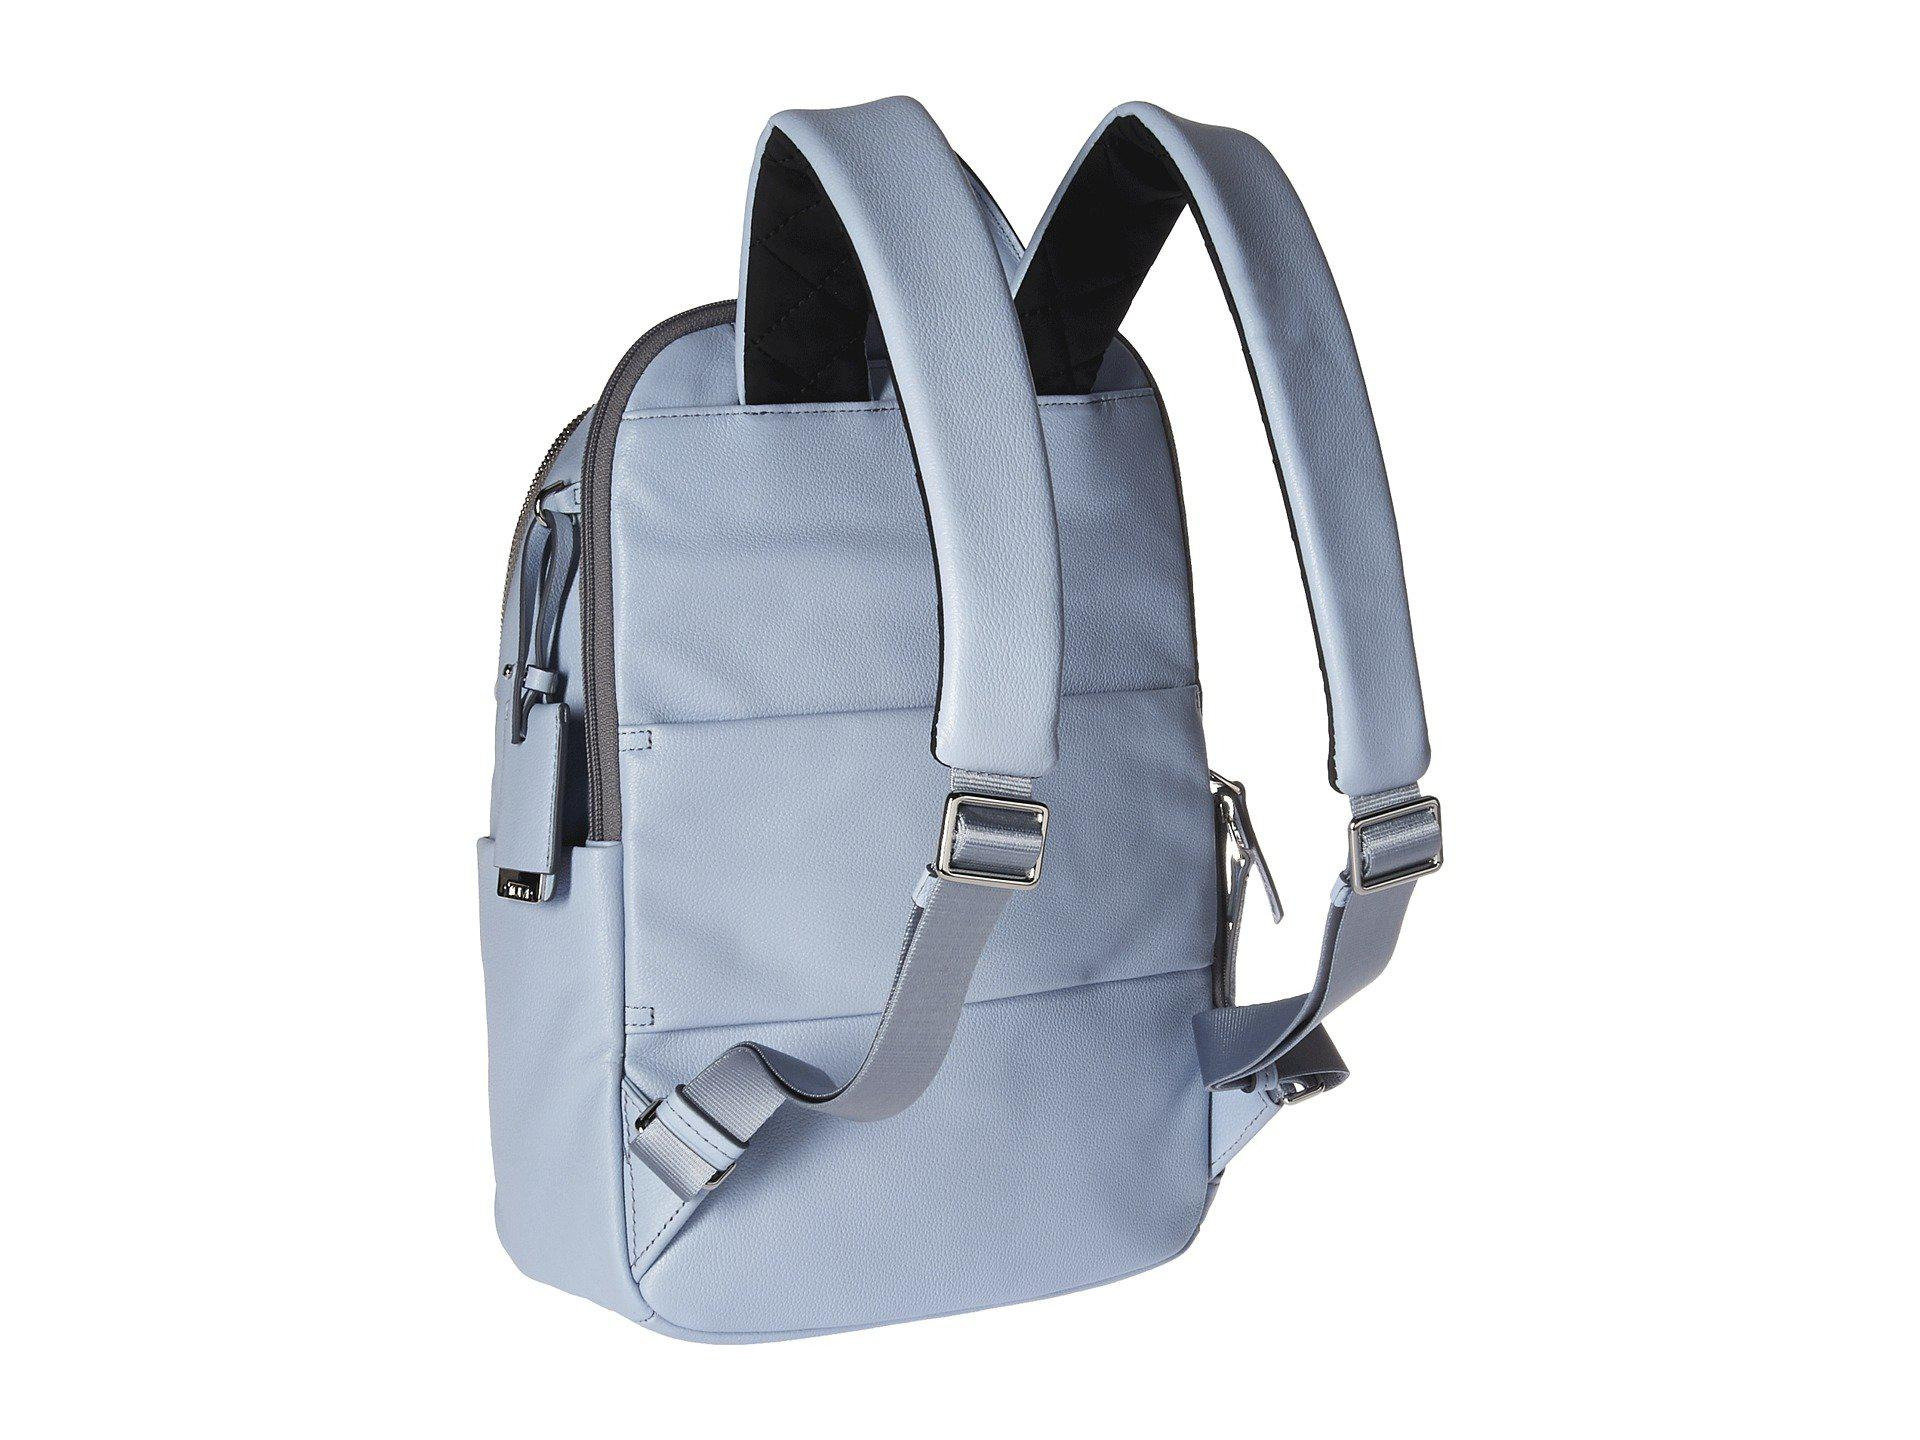 Lyst - Tumi Voyageur Leather Daniella Small Backpack (light Blue ... 6cf3e61a39